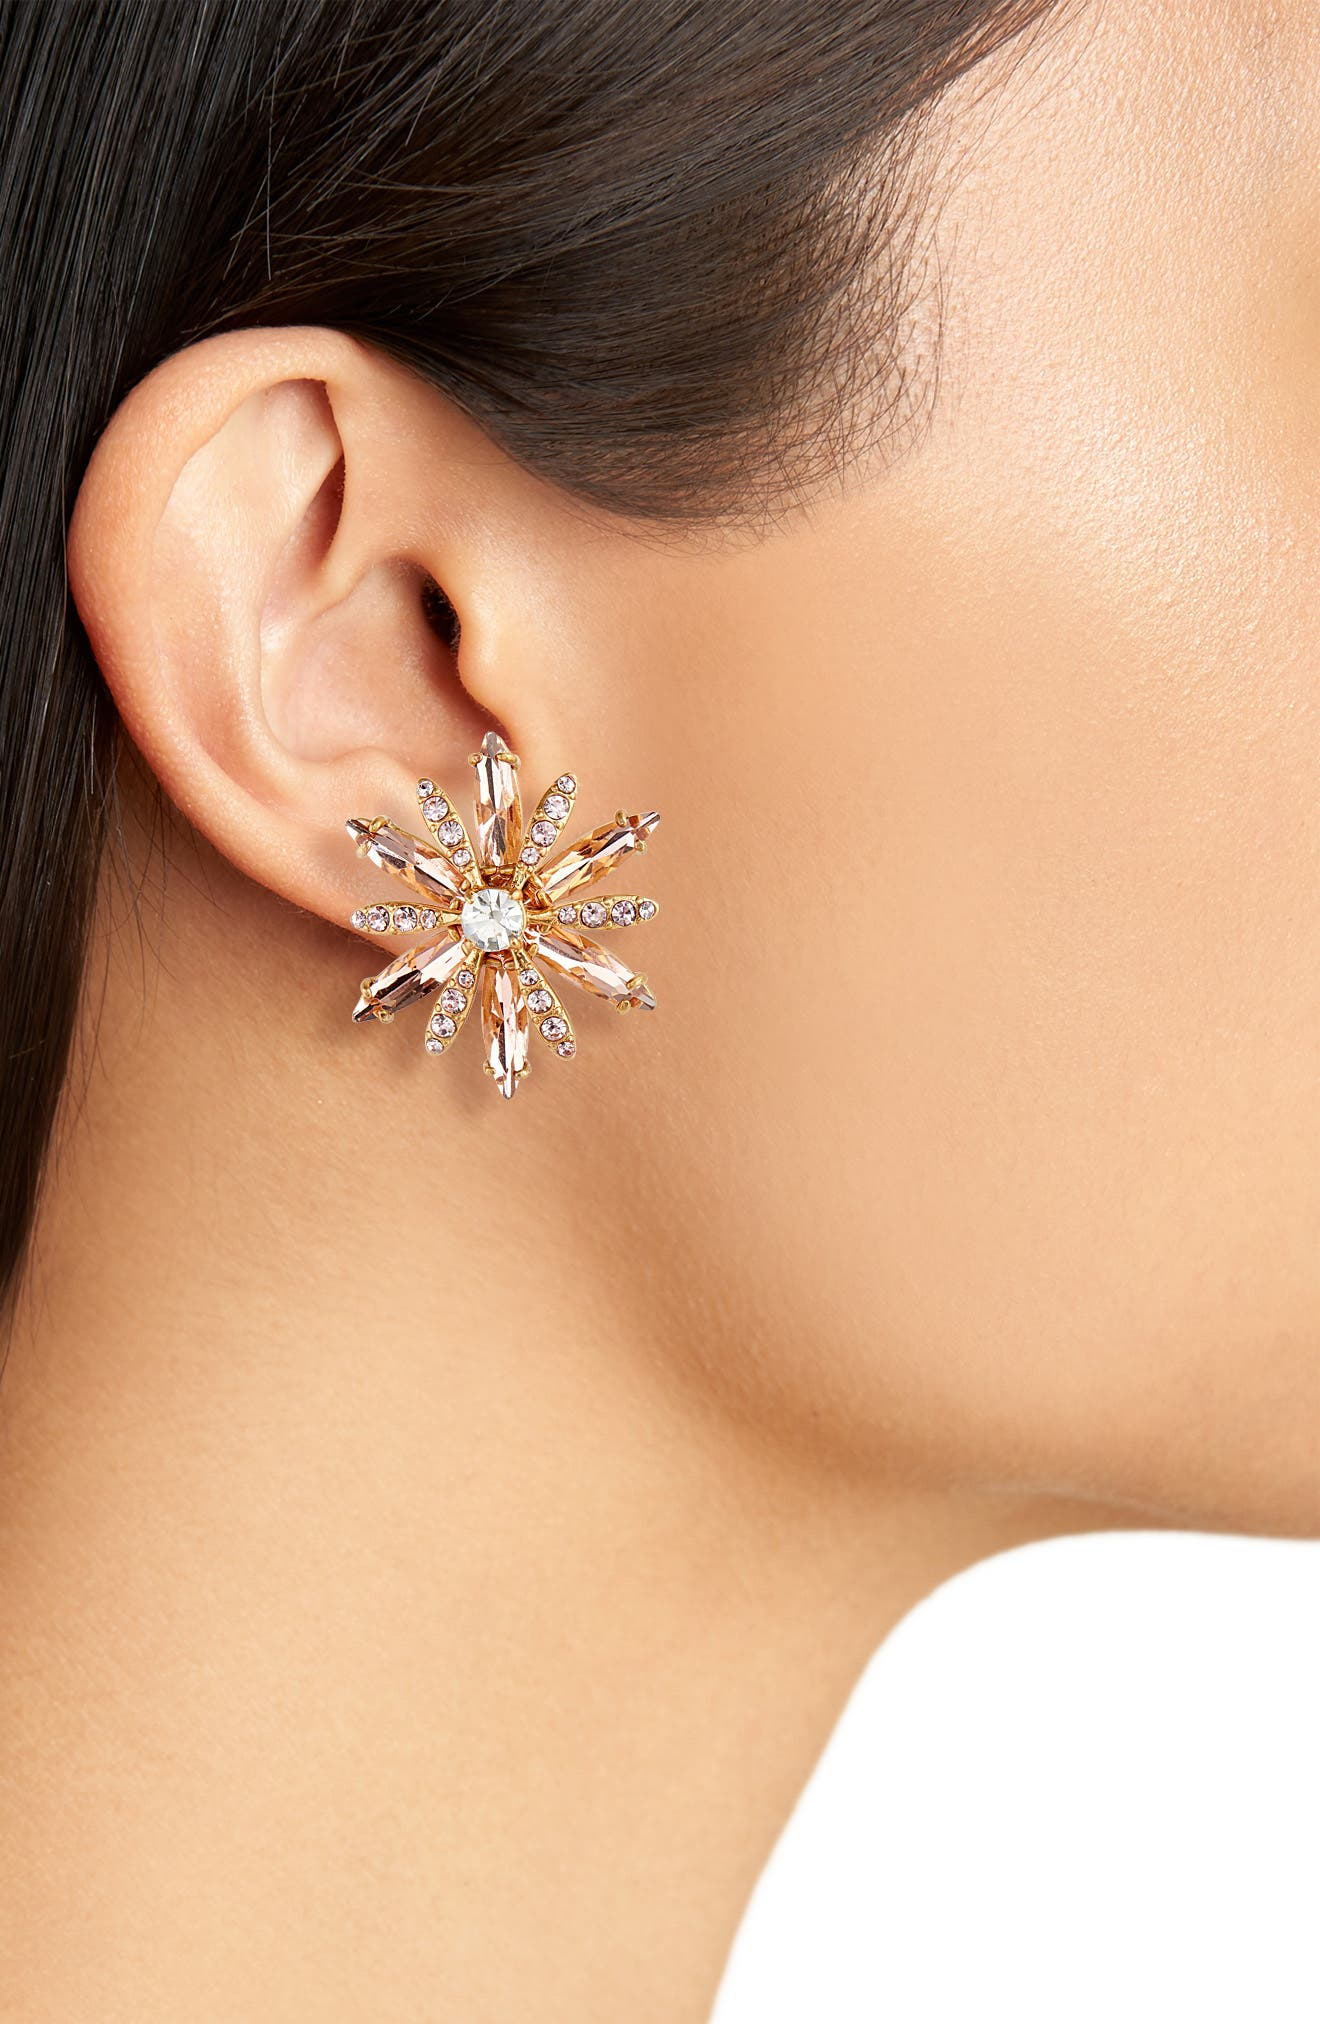 Crystal Cluster Earrings,                             Alternate thumbnail 2, color,                             650